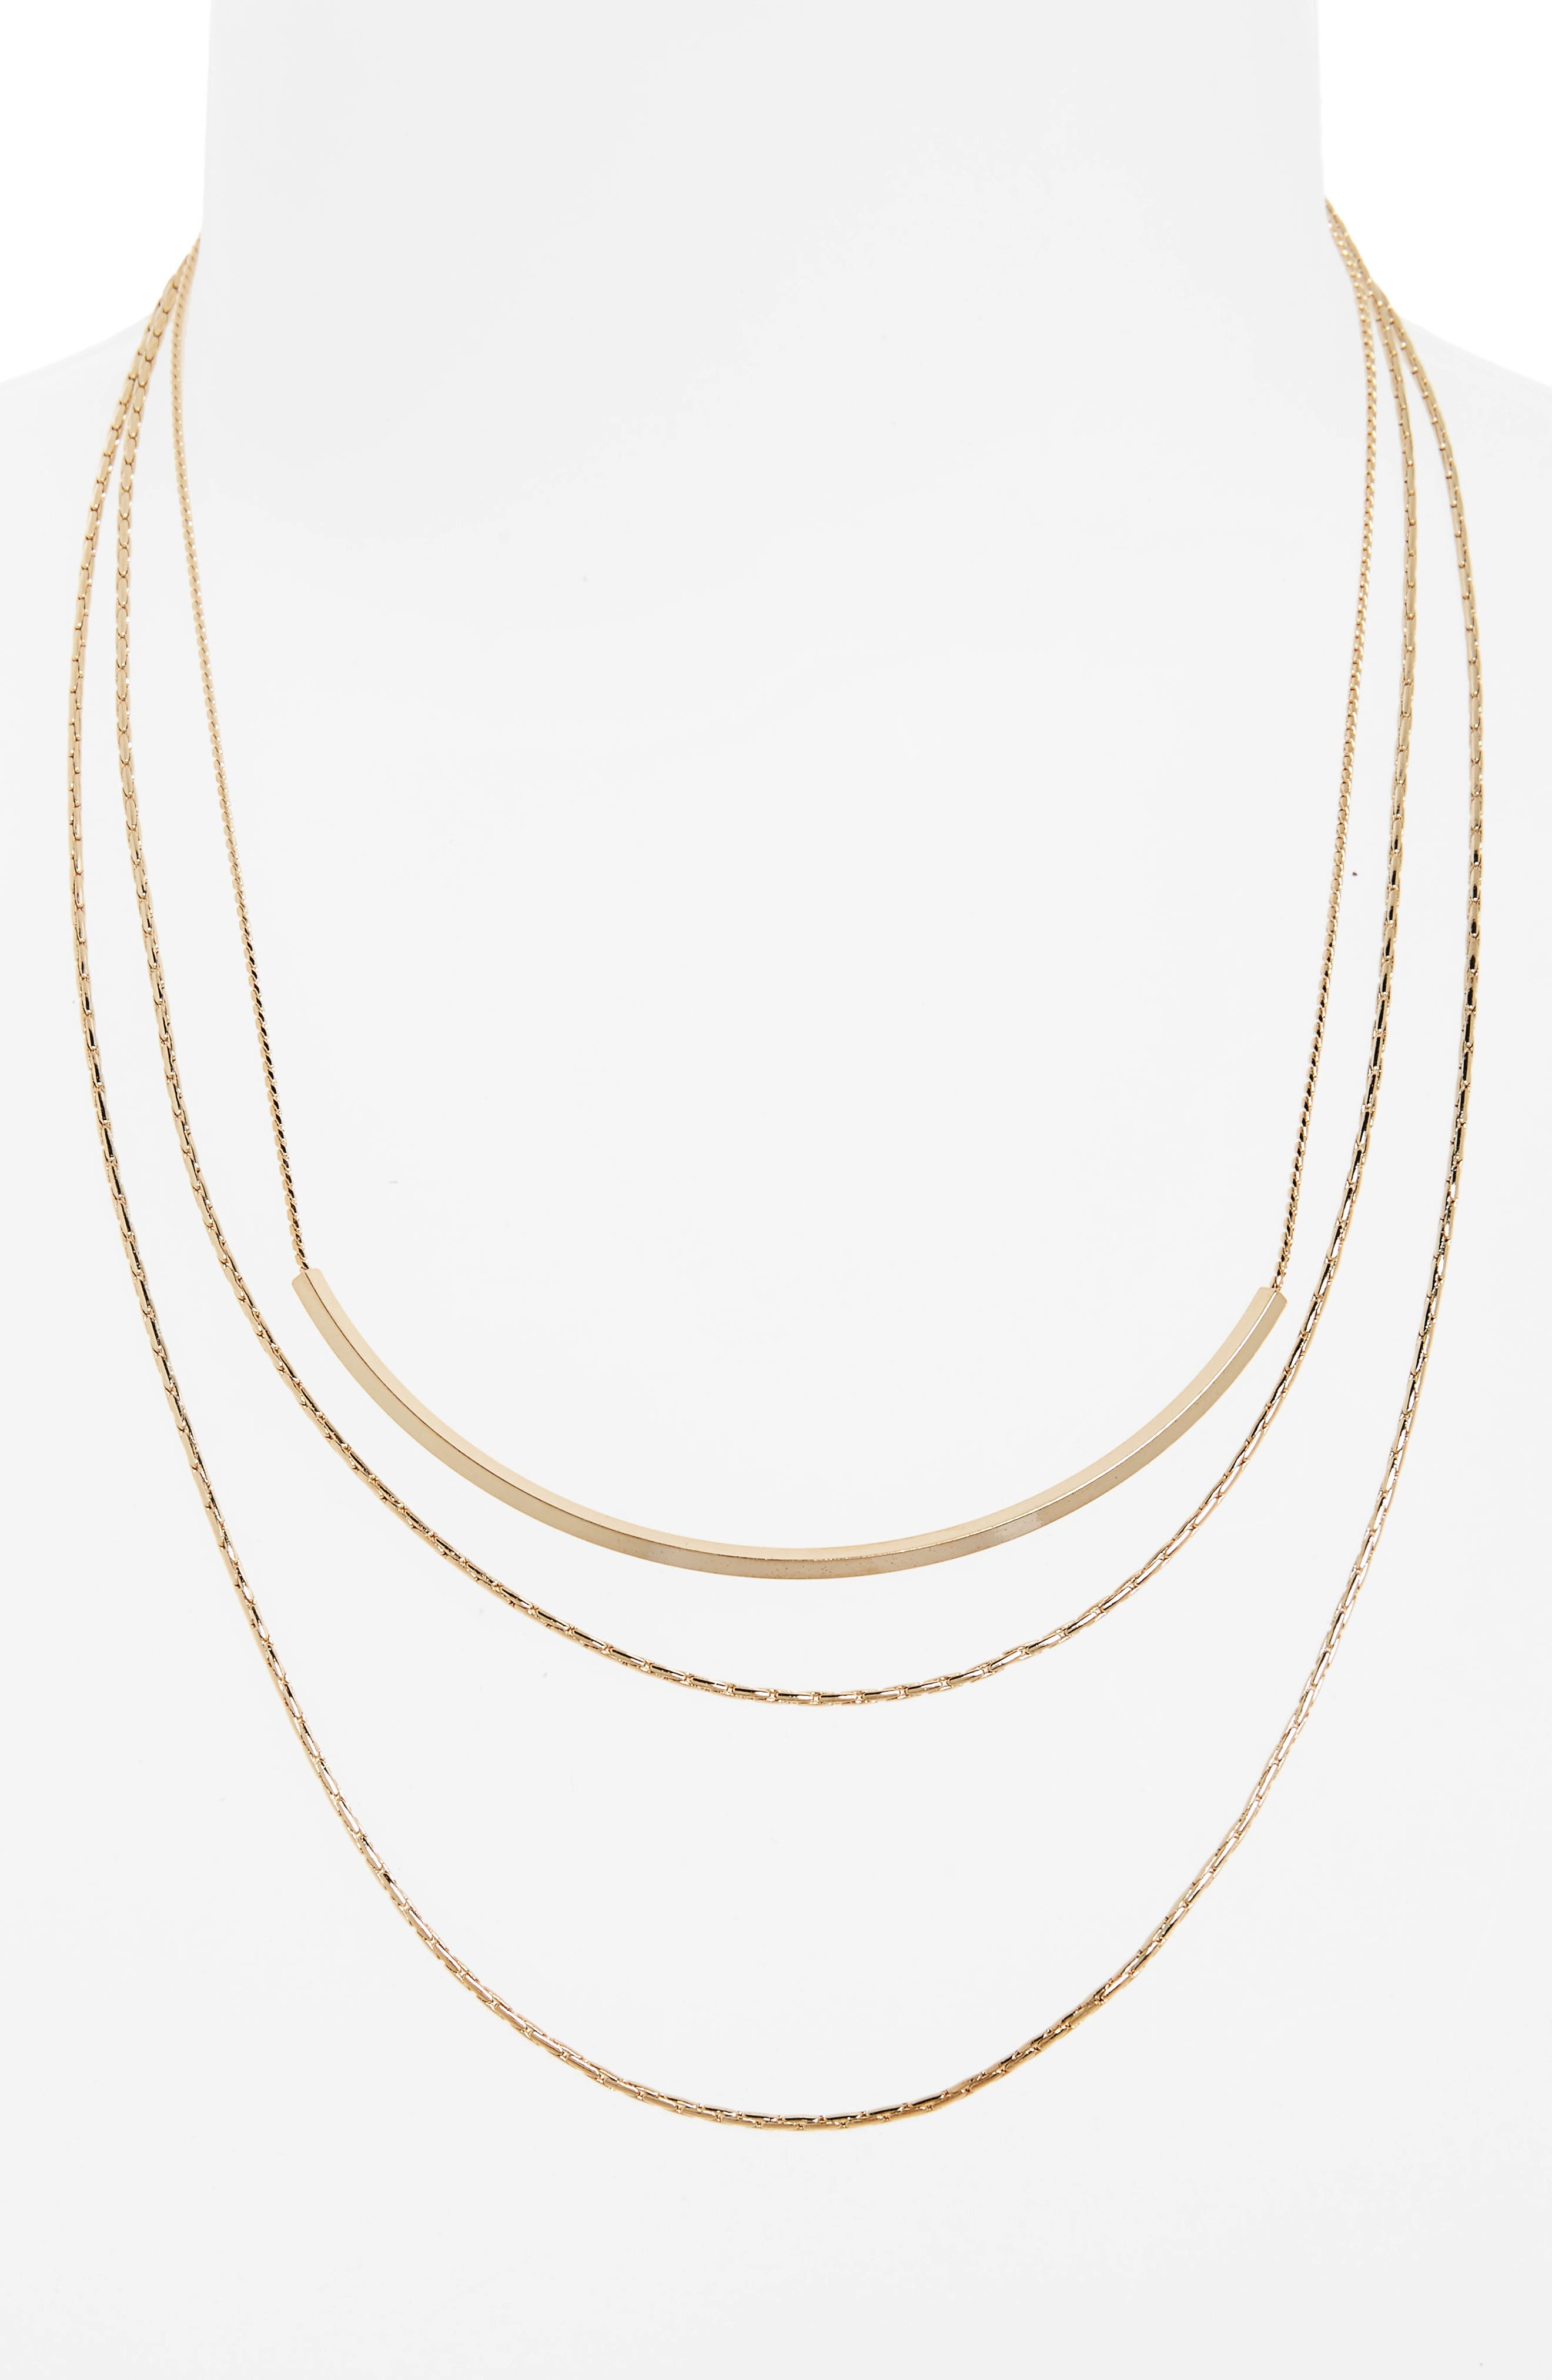 Alternate Image 1 Selected - Panacea Layered Chain Necklace